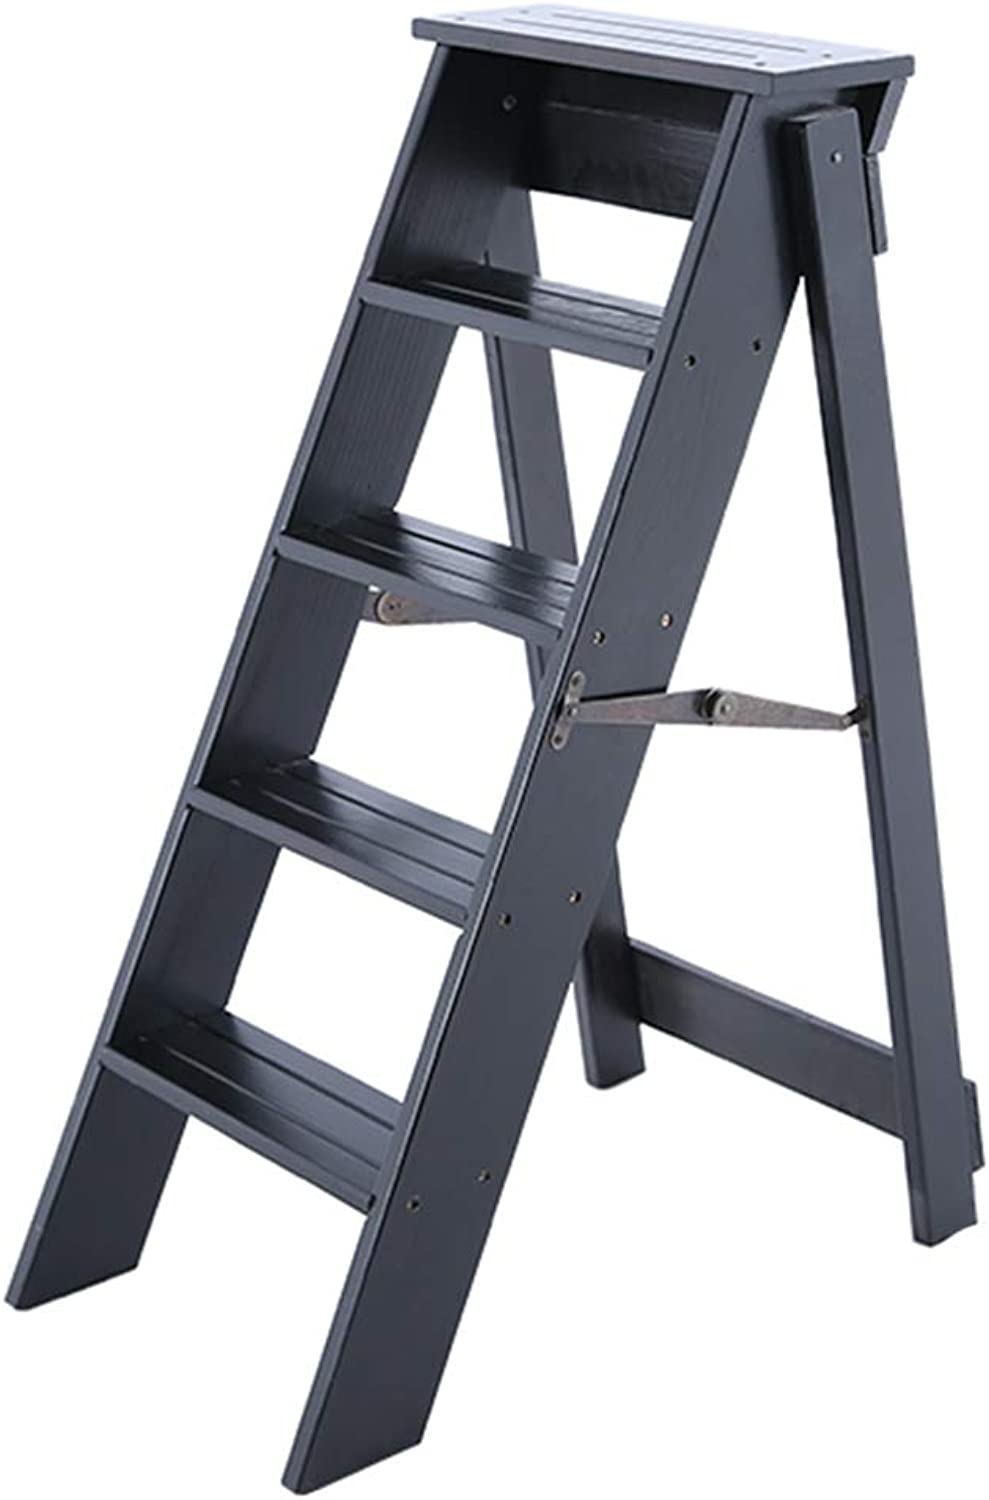 Multipurpose Ladders Foldable Step Stool Five Step Ladder Solid Wood Ladder Flower Stand Shelf Household Ladder Ladders (color   Black, Size   34  60  88cm)